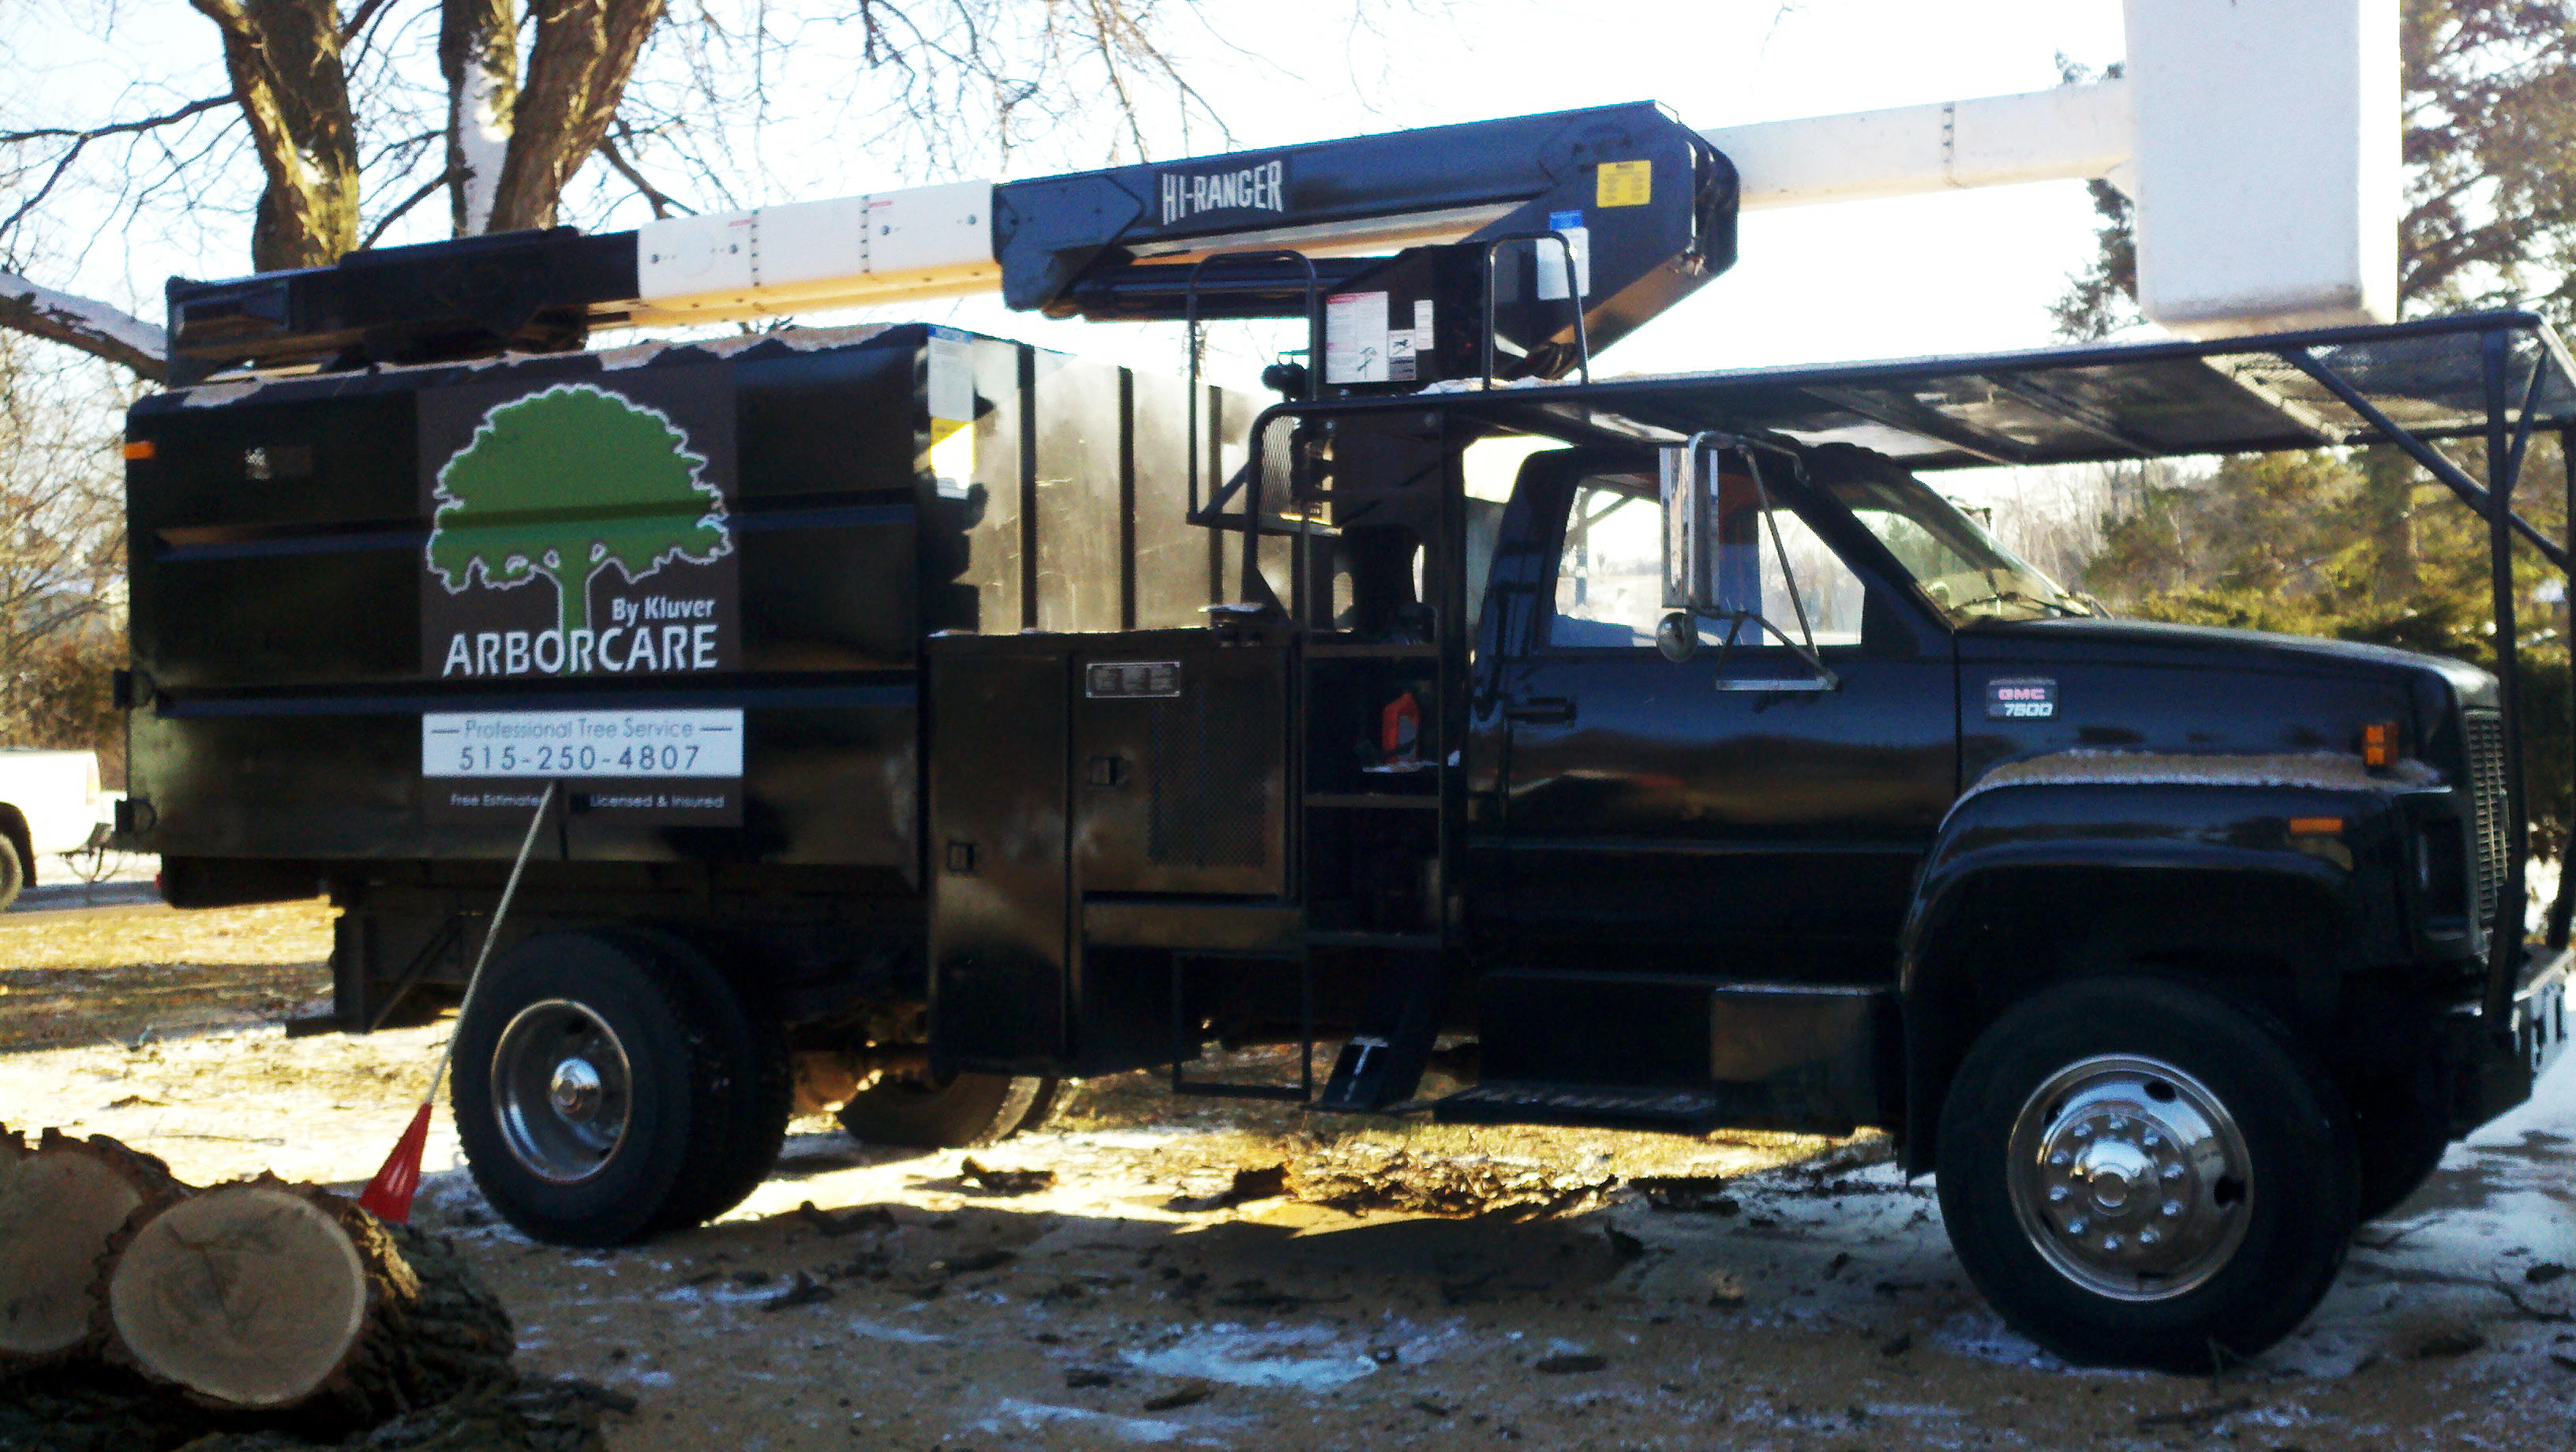 Arborcare by Kluver LLC image 3